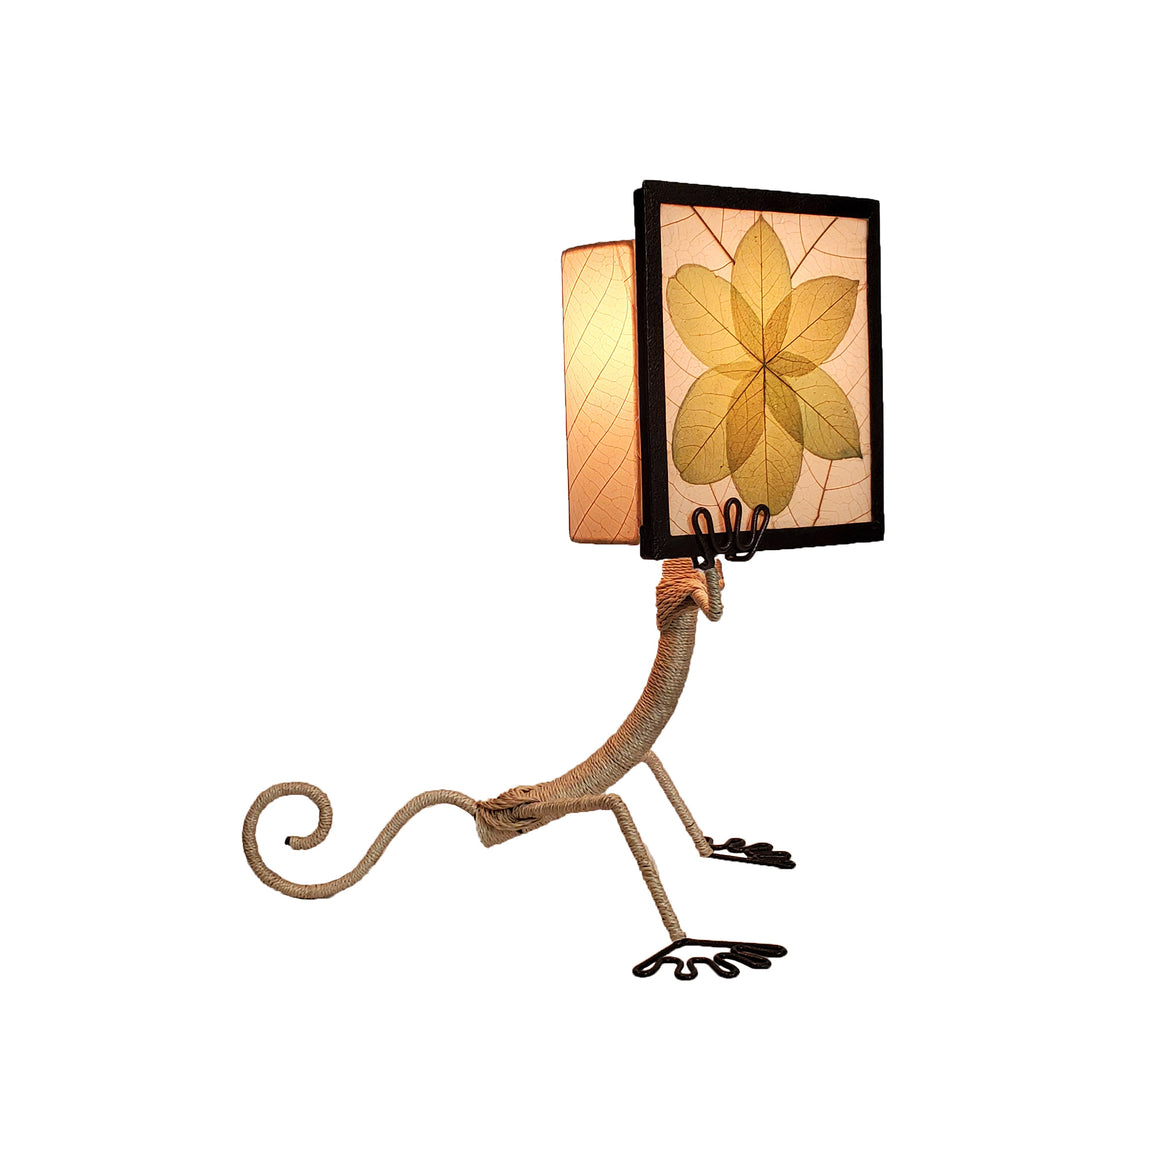 Eangee Enlightened Gecko Table Lamp